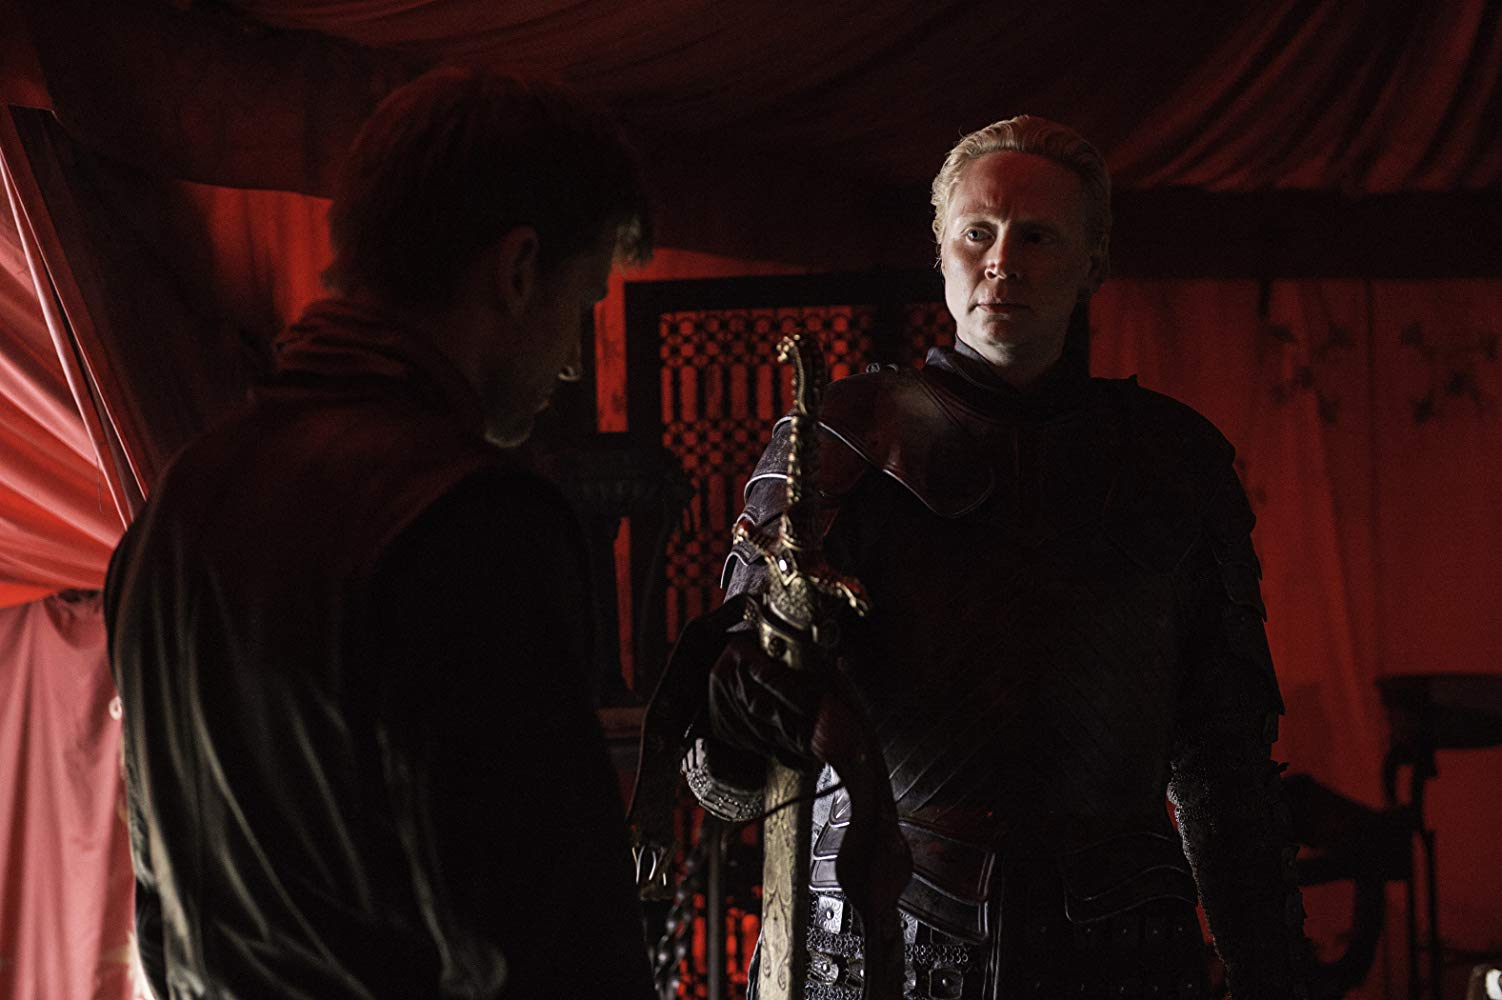 brienne of tarth with jaime lannister